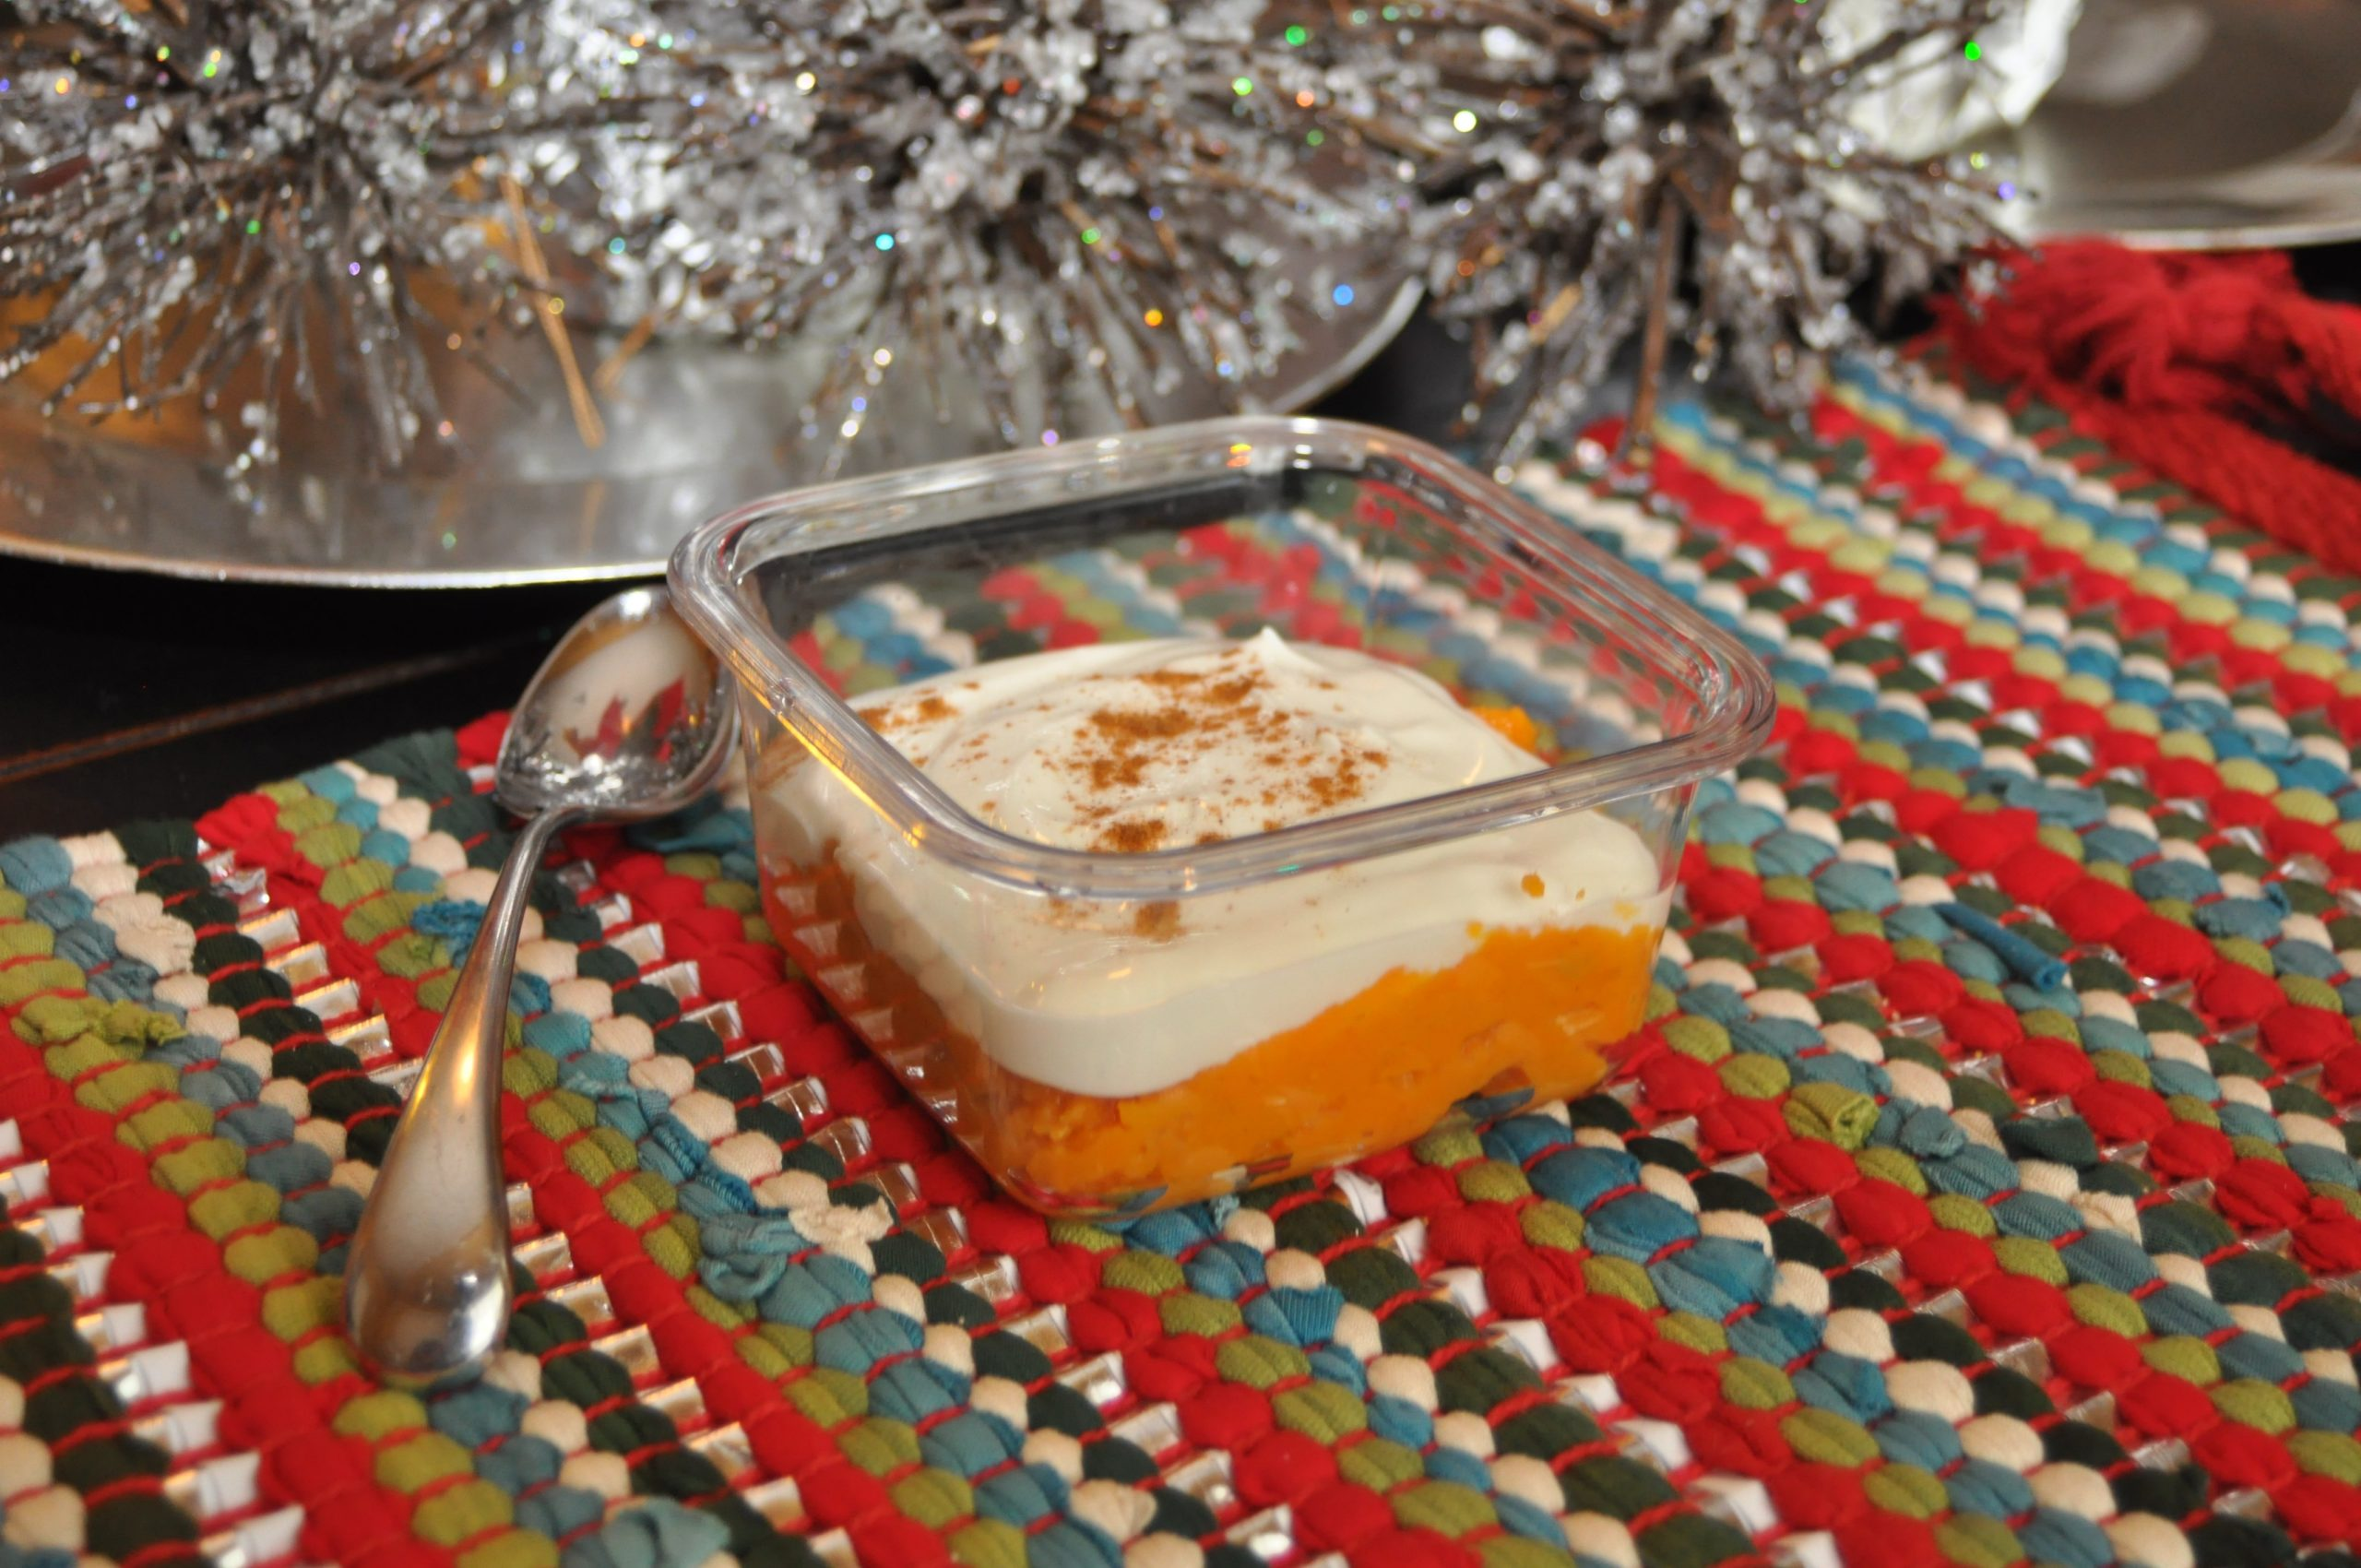 #HeidiPowell #SweetPotato Pudding #HealthySnack - Learn more at https://heidipowell.net/100